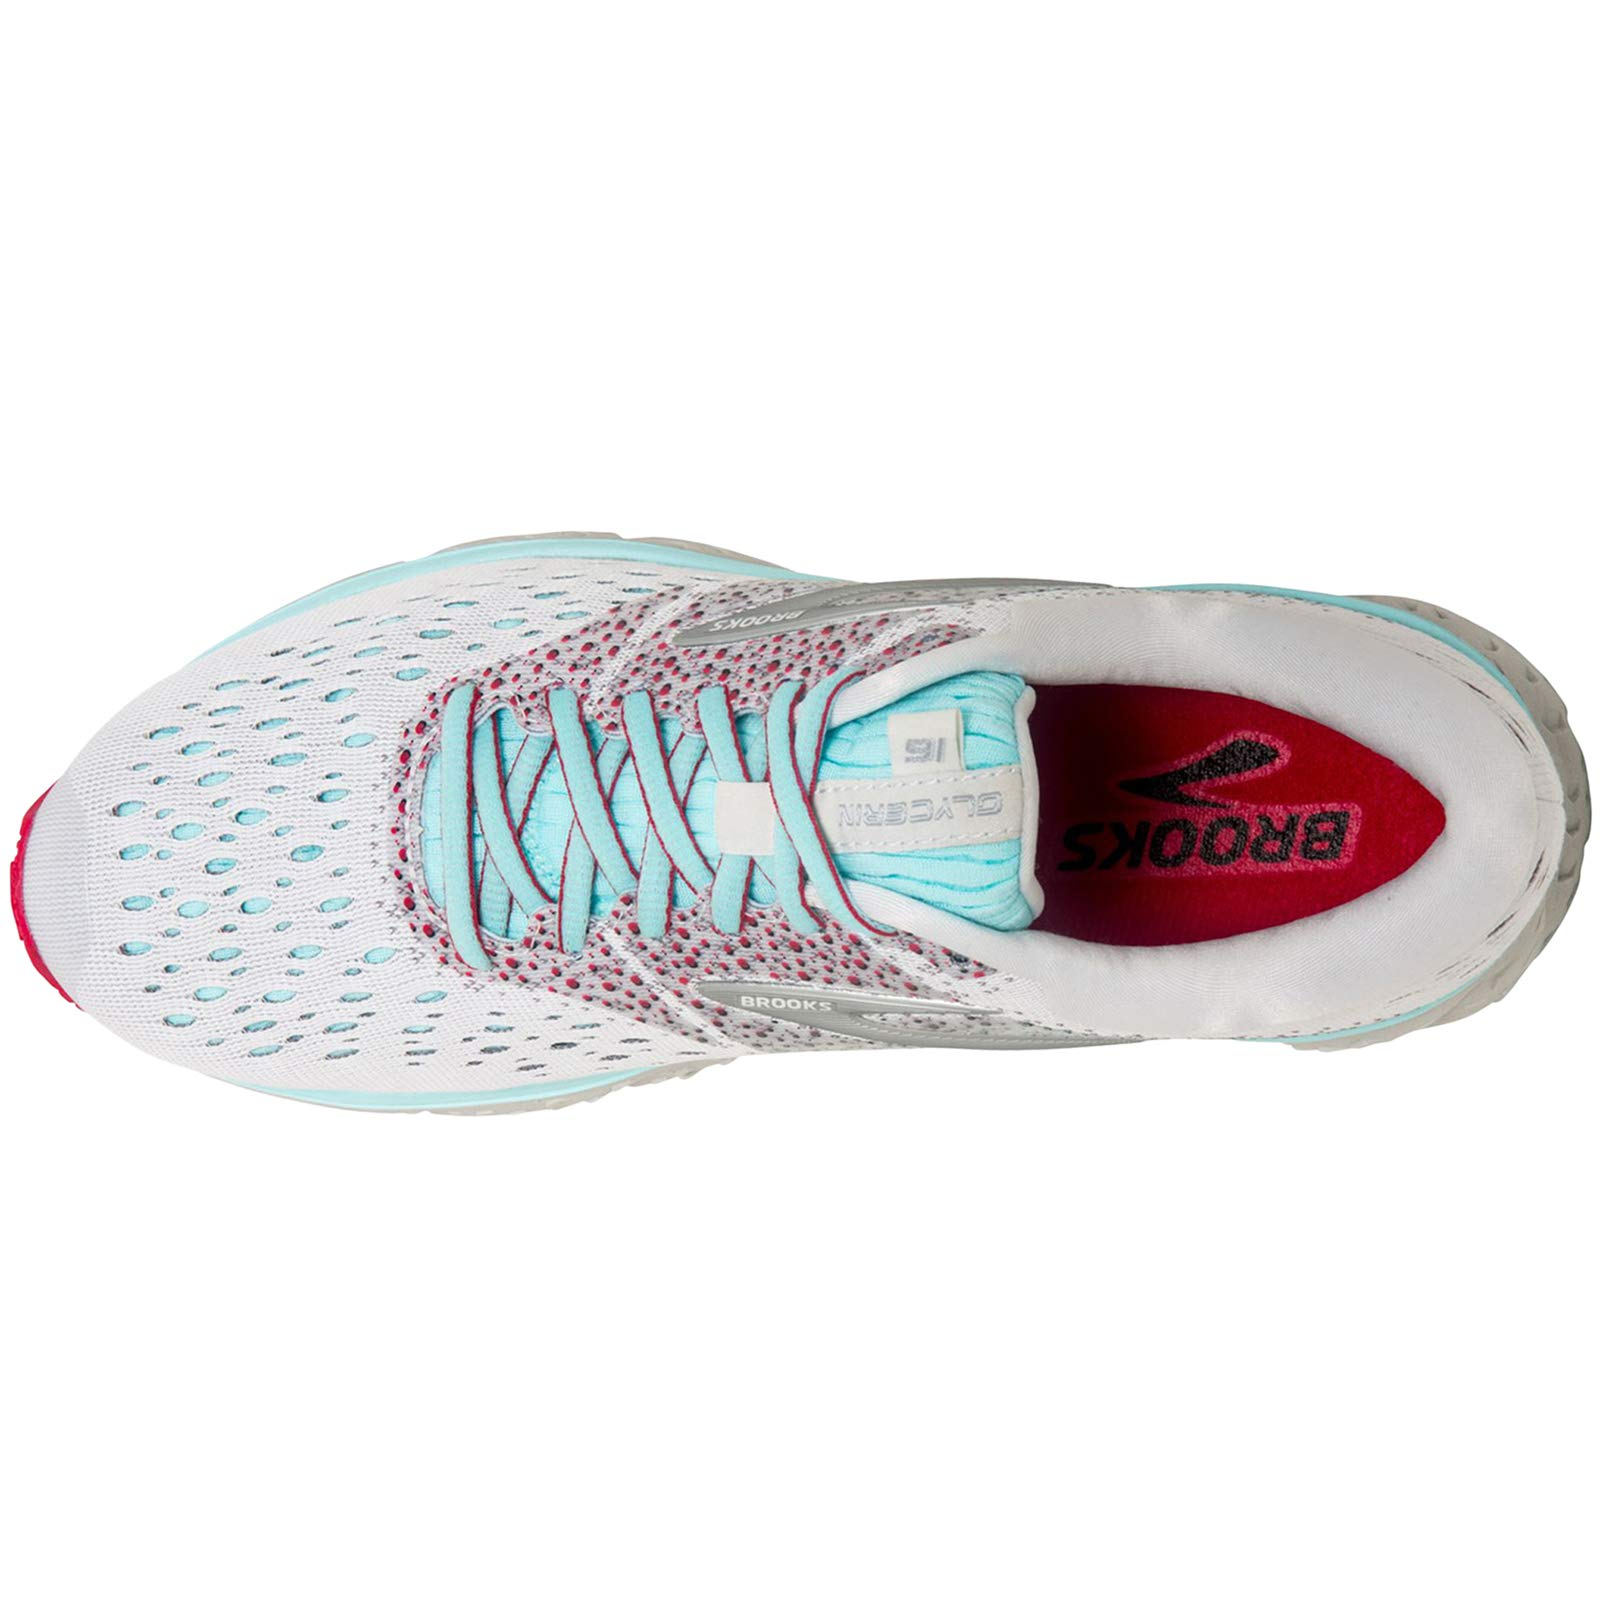 Brooks Women's Glycerin 16 White/Blue/Pink 5.5 B US by Brooks (Image #3)